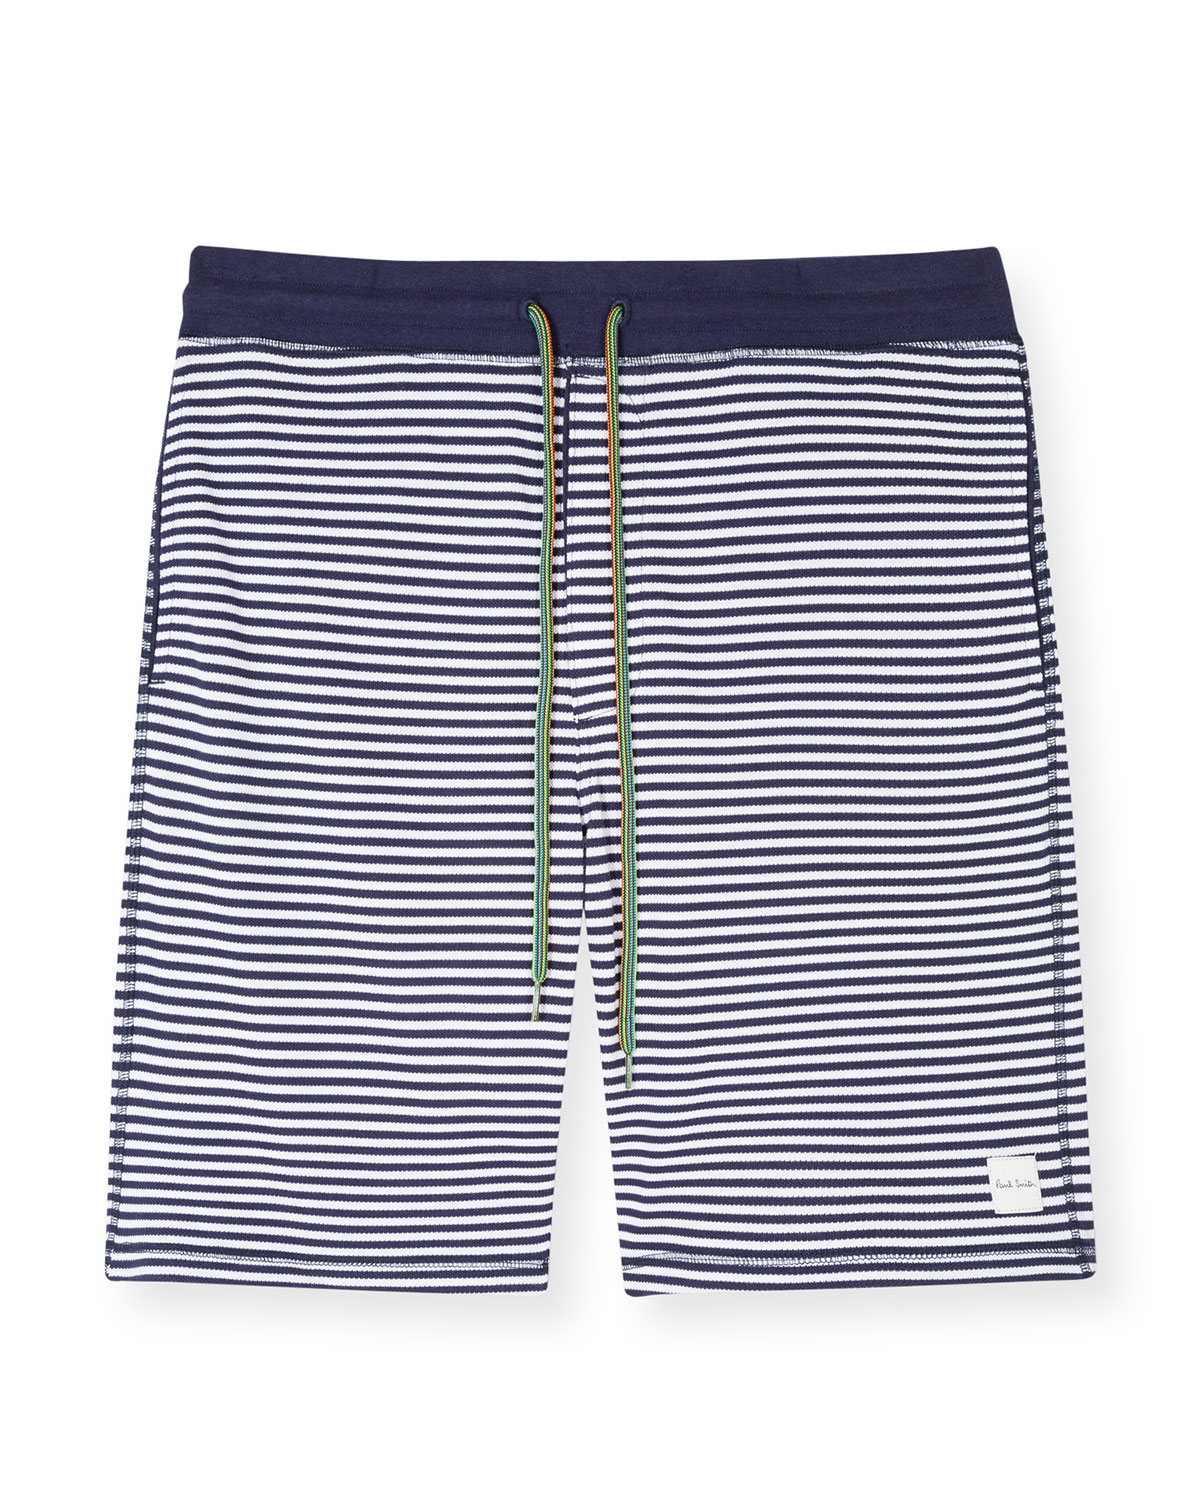 Paul Smith MEN'S STRIPED DRAWSTRING SHORTS